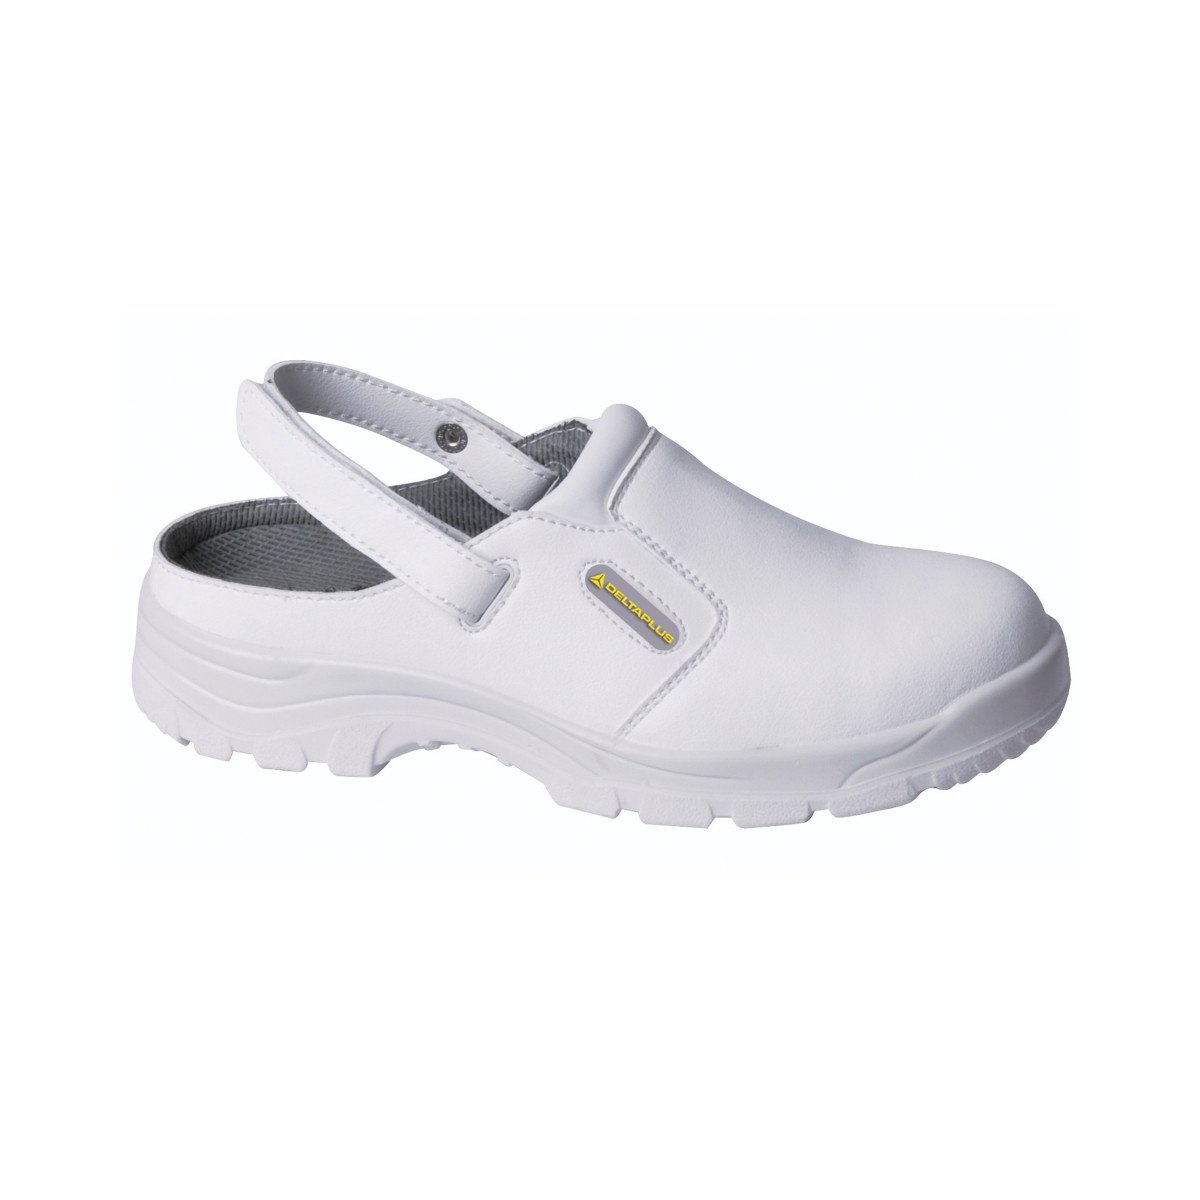 Delta Plus Unisex Safety Clogs Hygiene Non Slip UTBC3012_1